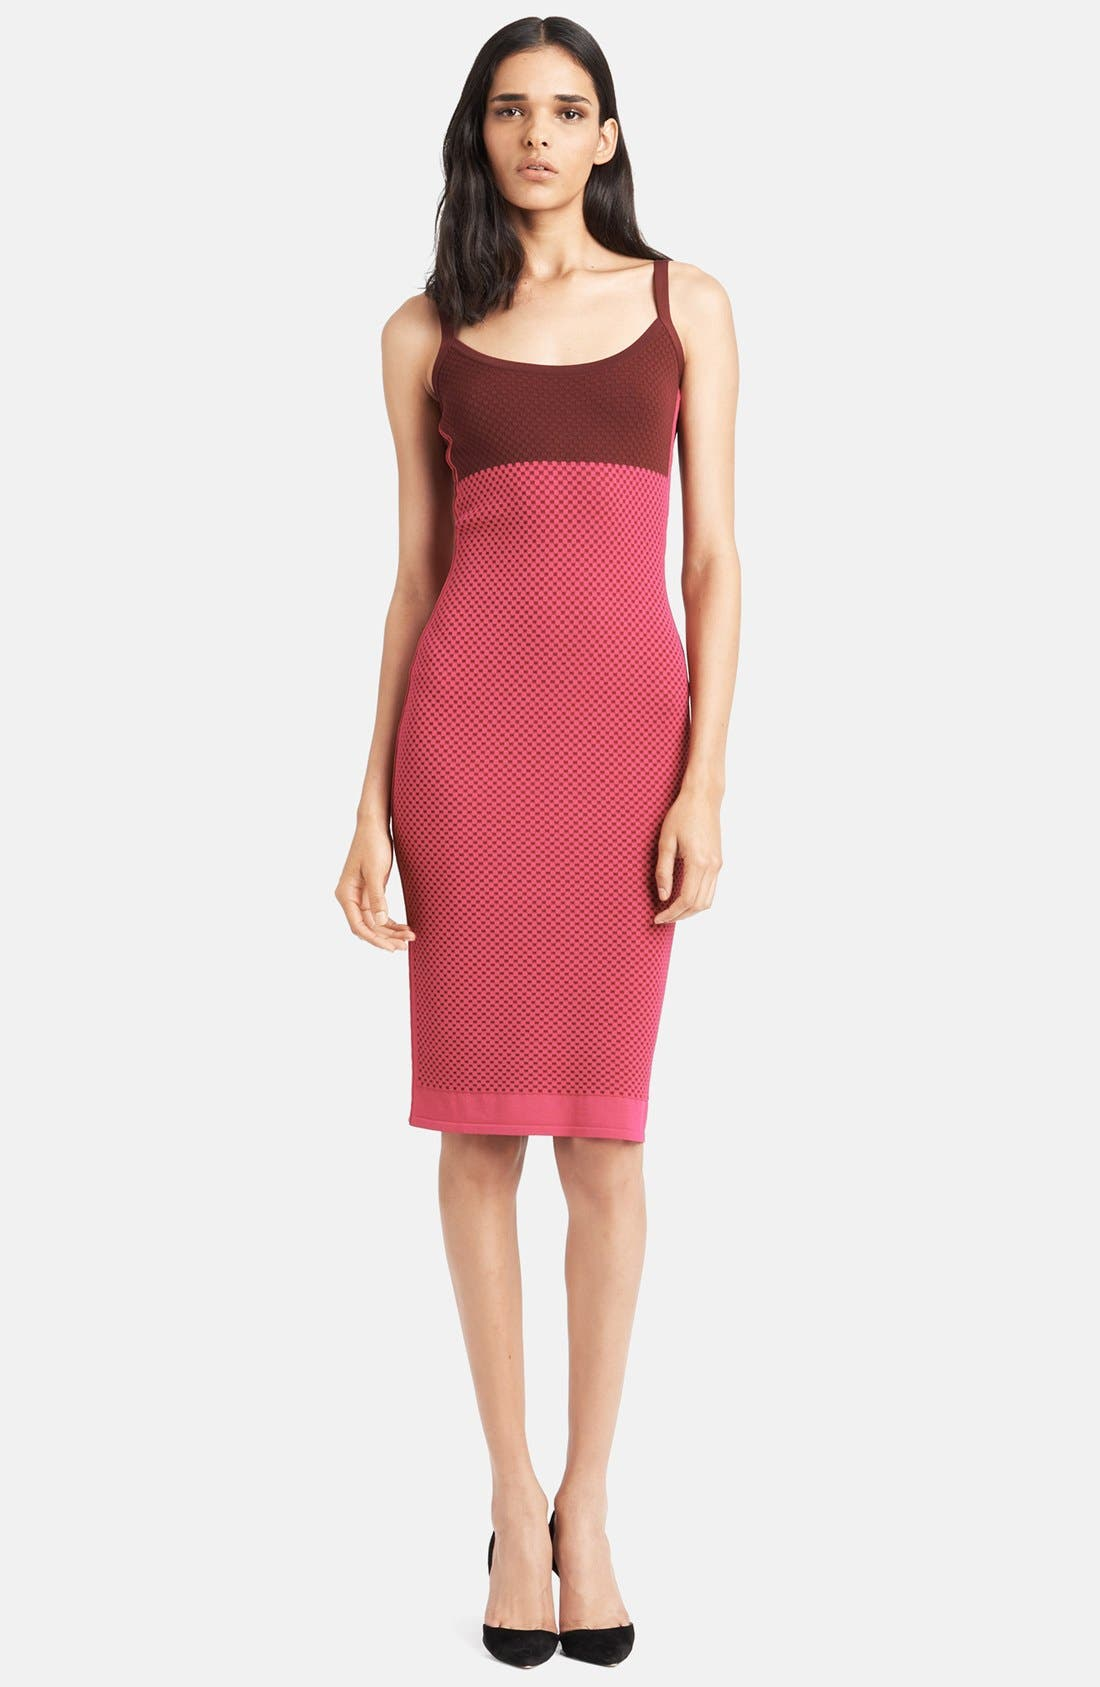 Main Image - Narciso Rodriguez Dress & Accessories